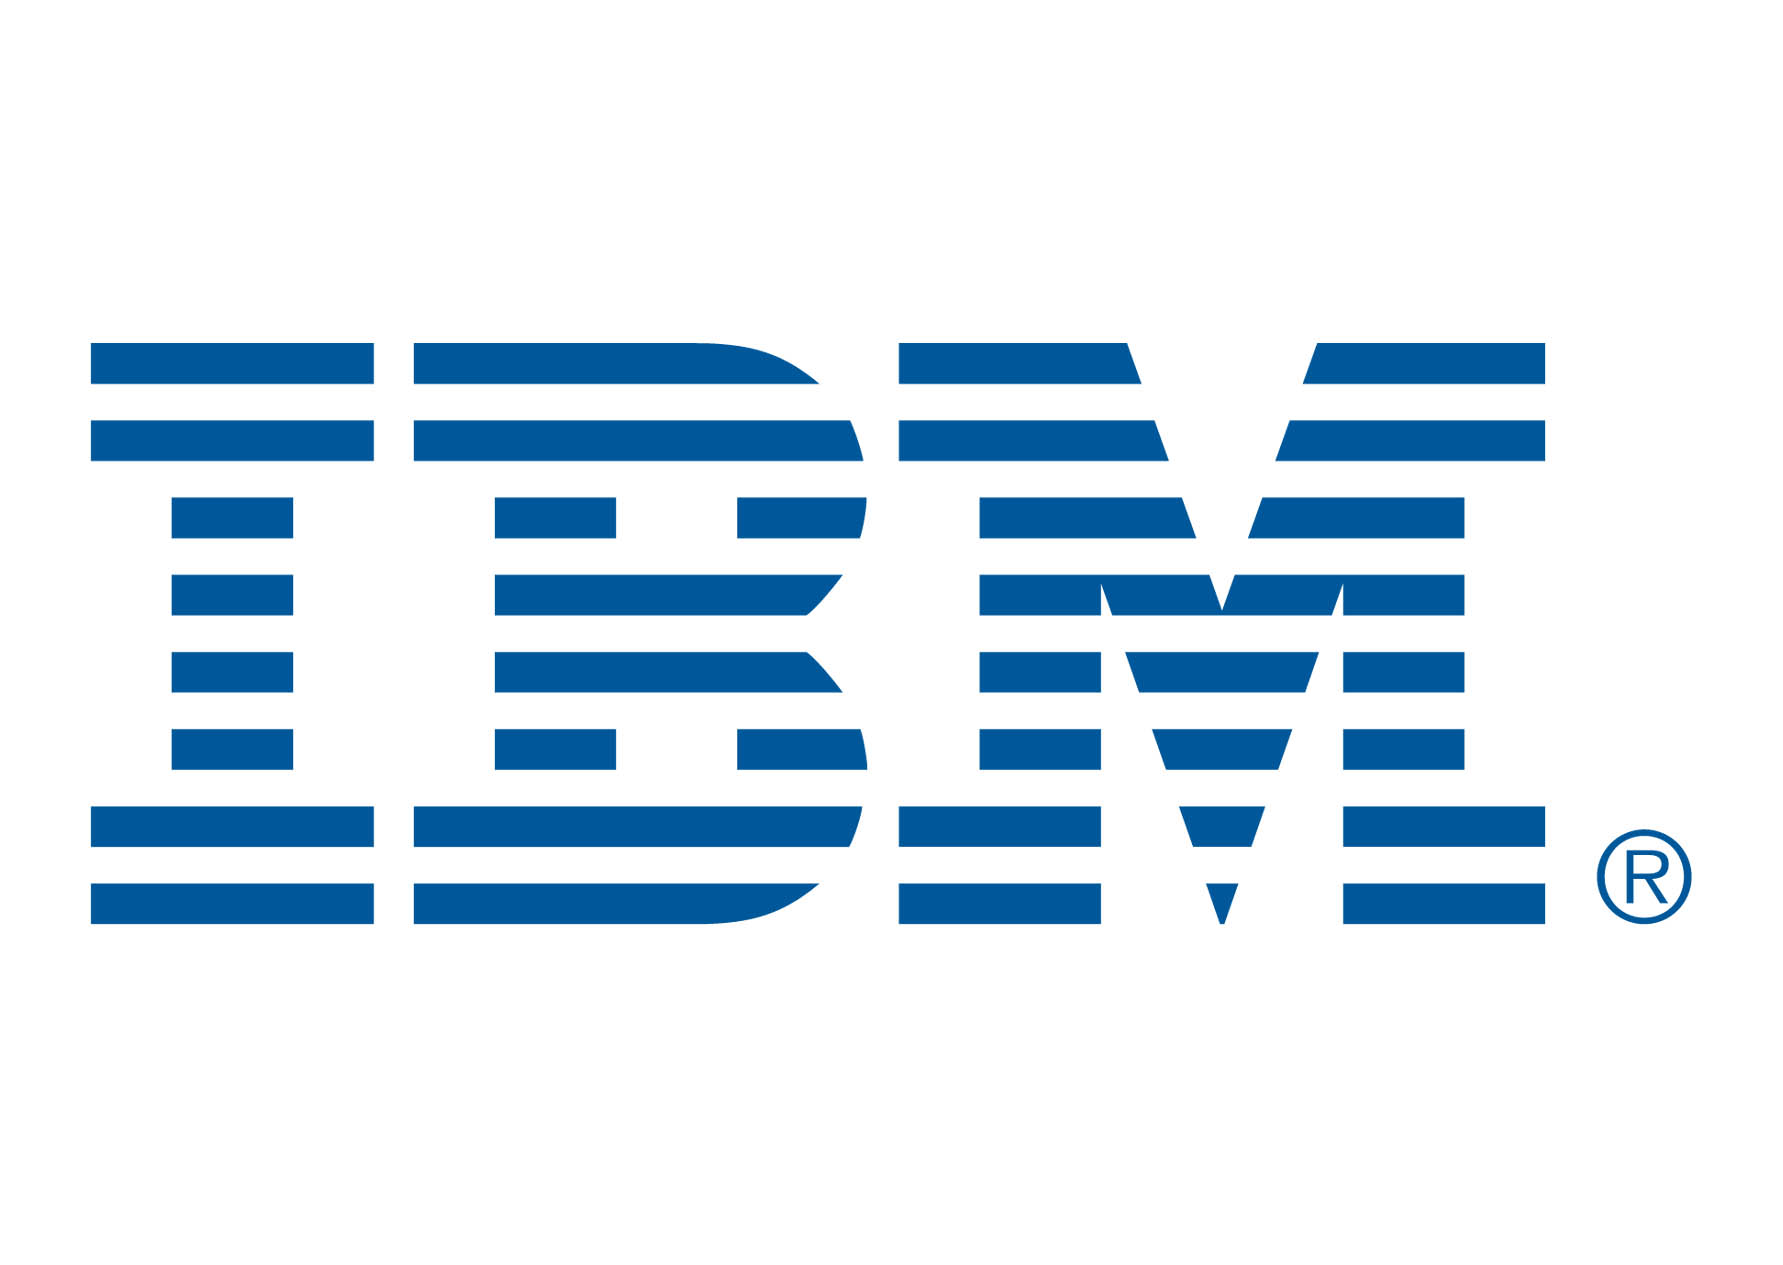 IBM jobs logo